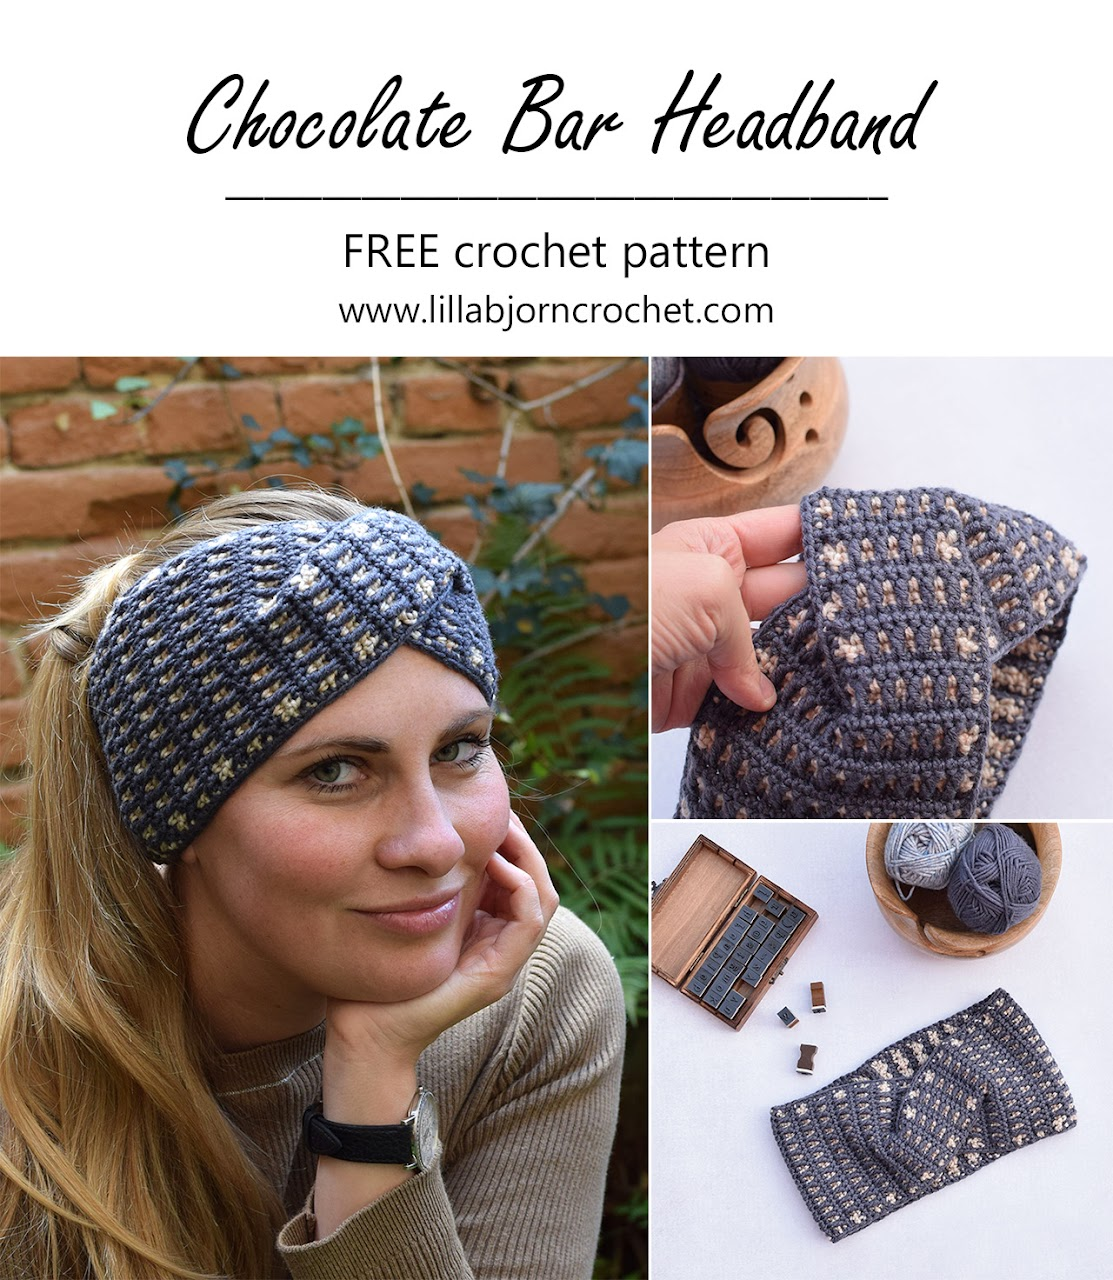 Chocolate Bar Headband_free crochet pattern by www.lillabjorncrochet.com